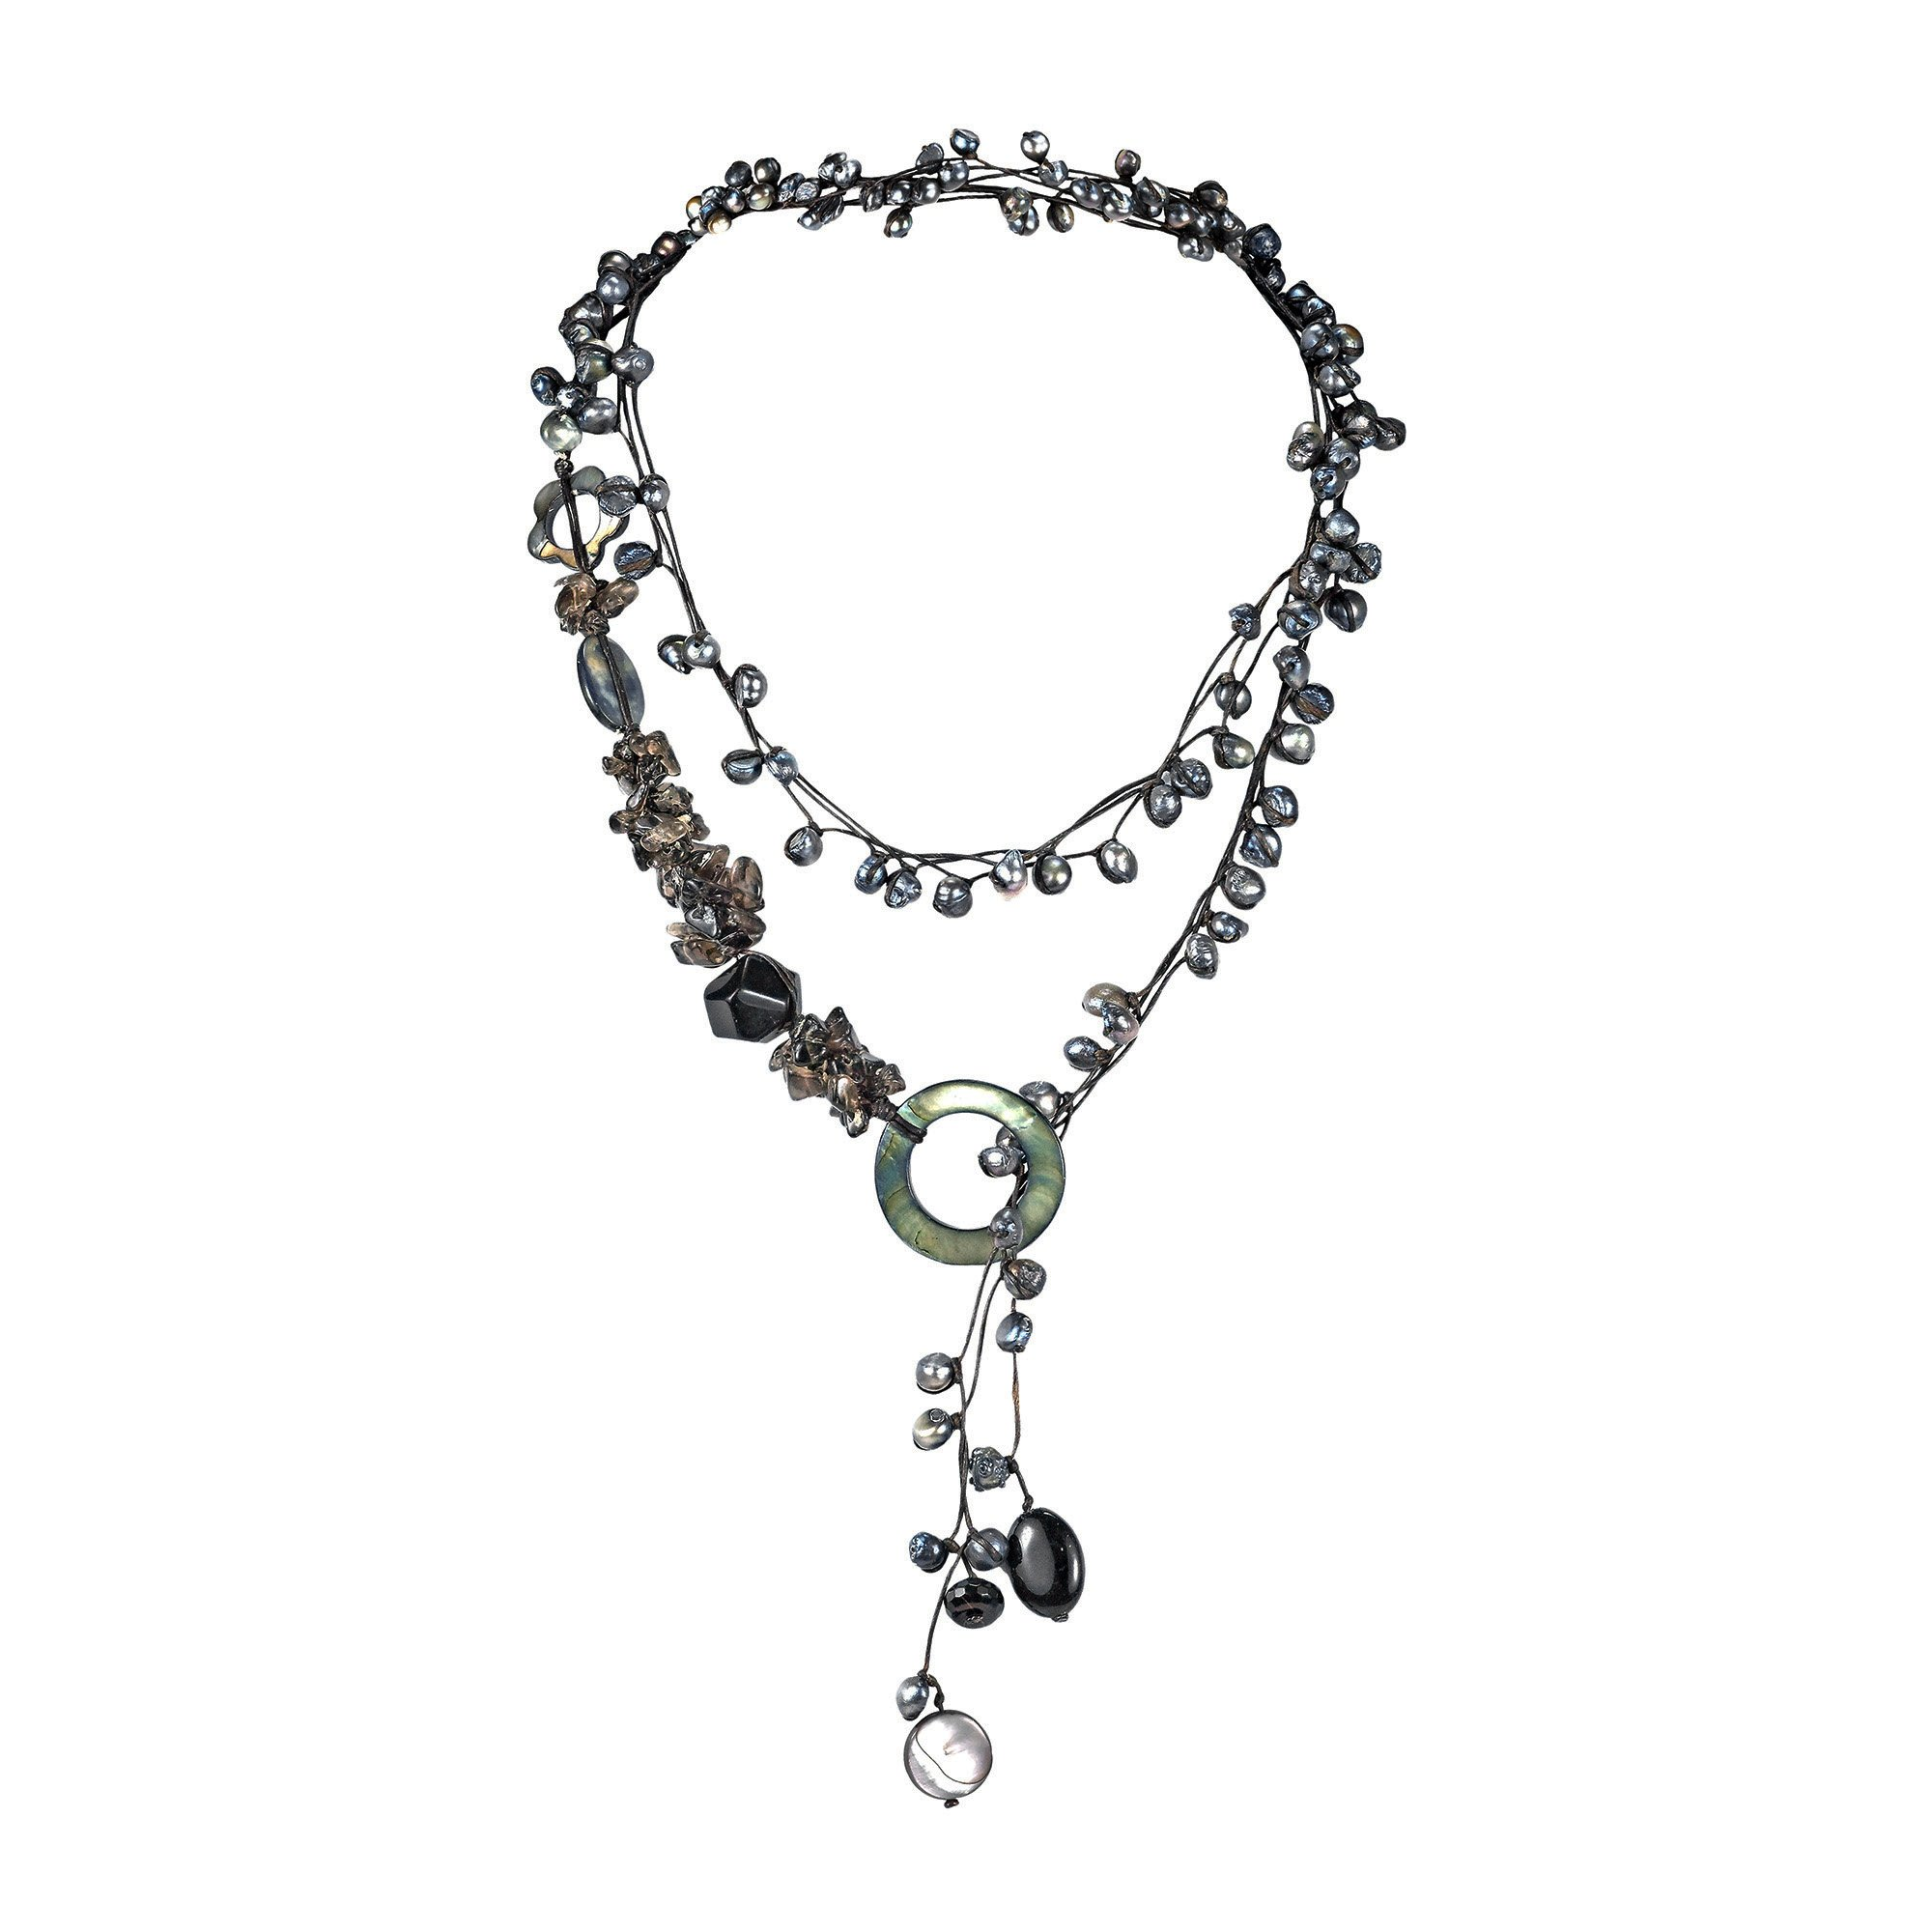 AeraVida Midnight Cultured FW Black Pearls-Reconstructed Black Agate-MOP On Cotton Rope Wrap Necklace by AeraVida